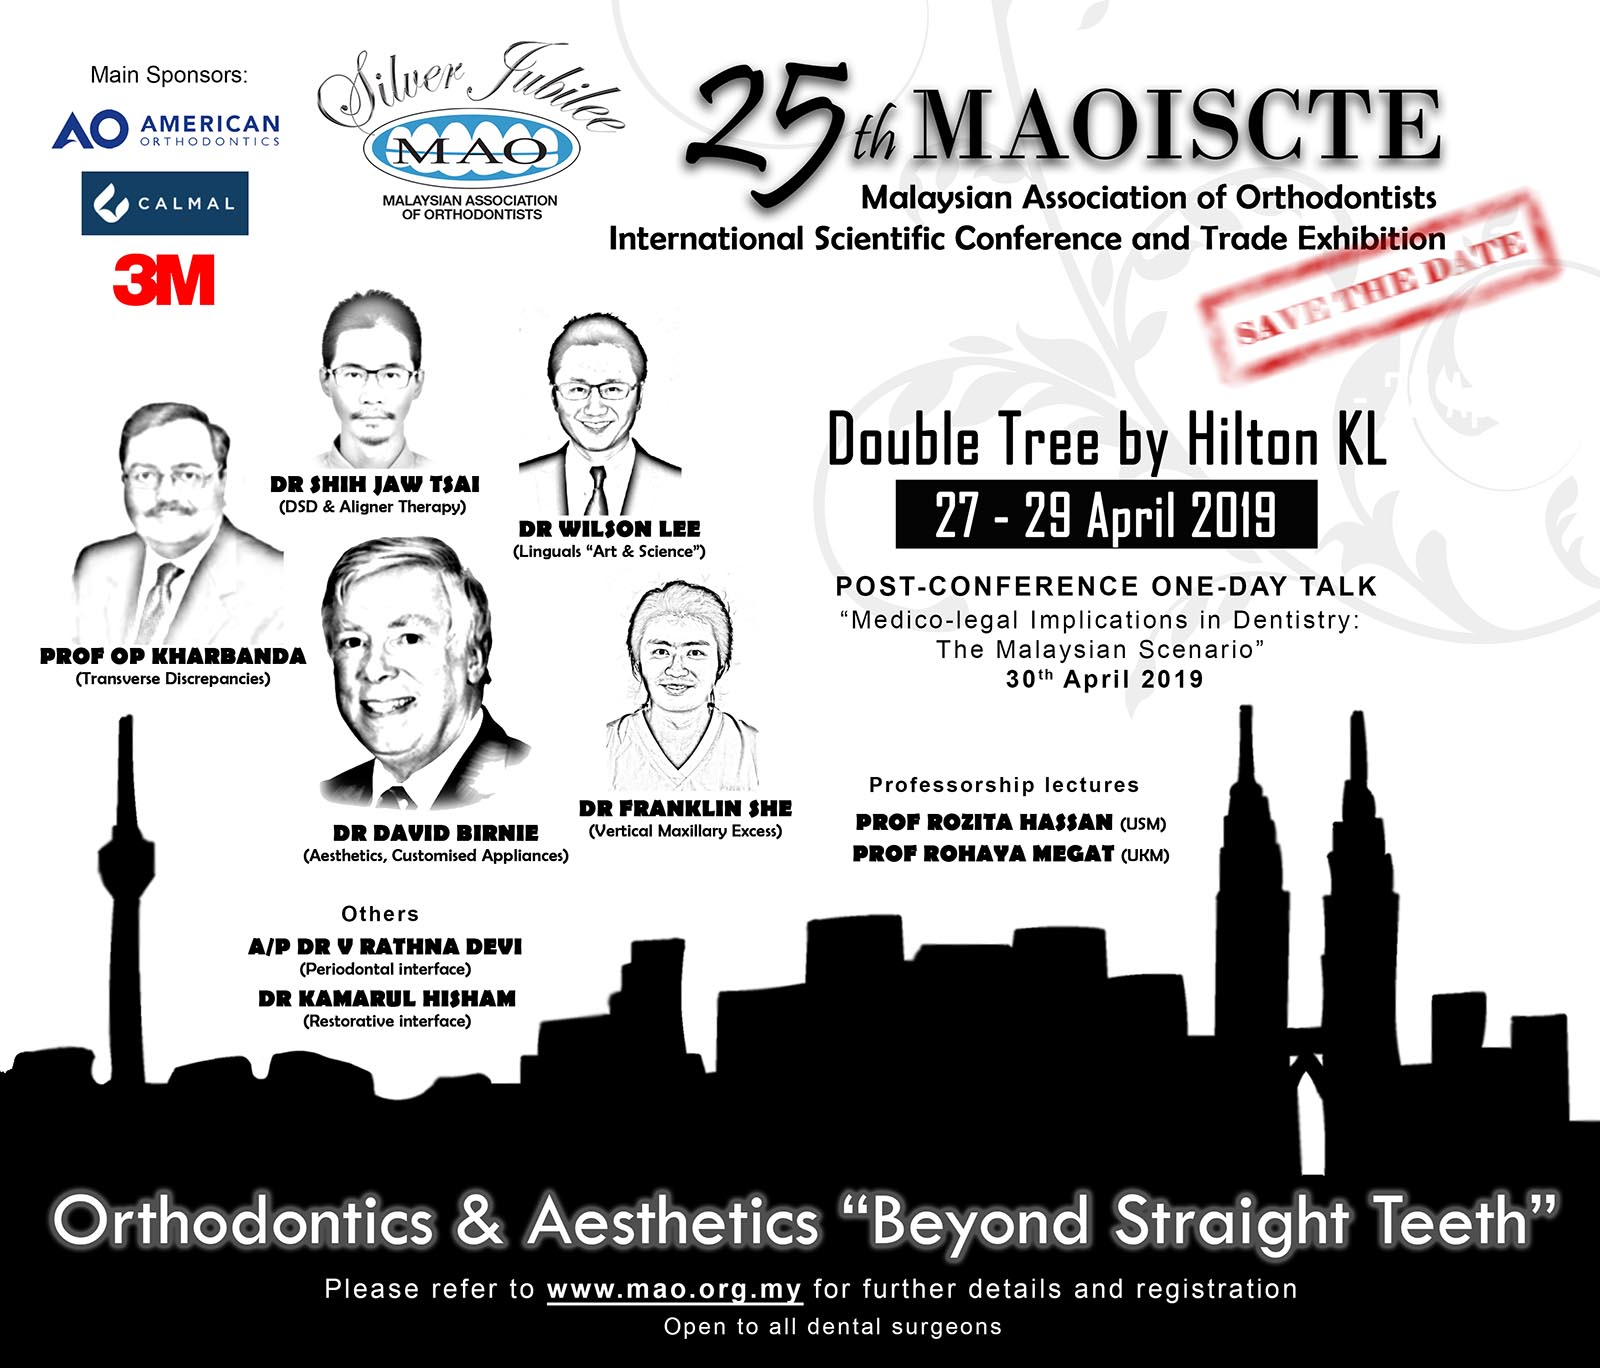 Latest events by Malaysian Association of Orthodontists